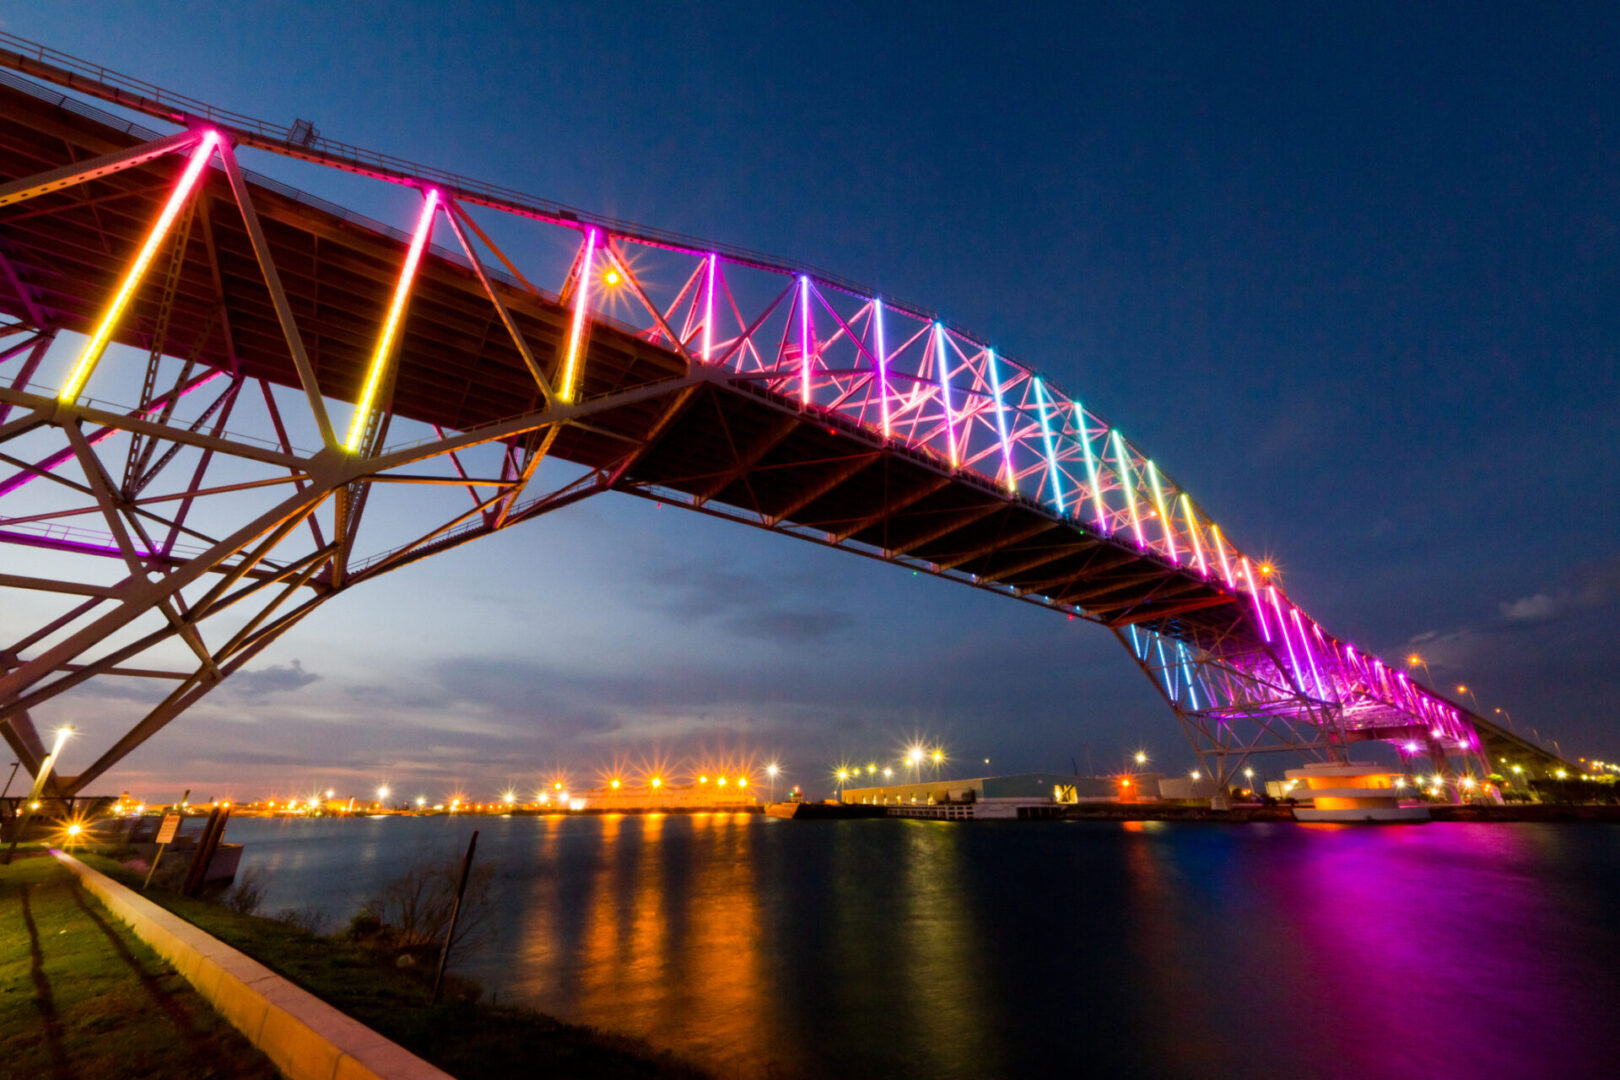 An evening / twilight photo taken of Corpus Christi's Harbor Bridge shortly after it's new lighting system was installed.